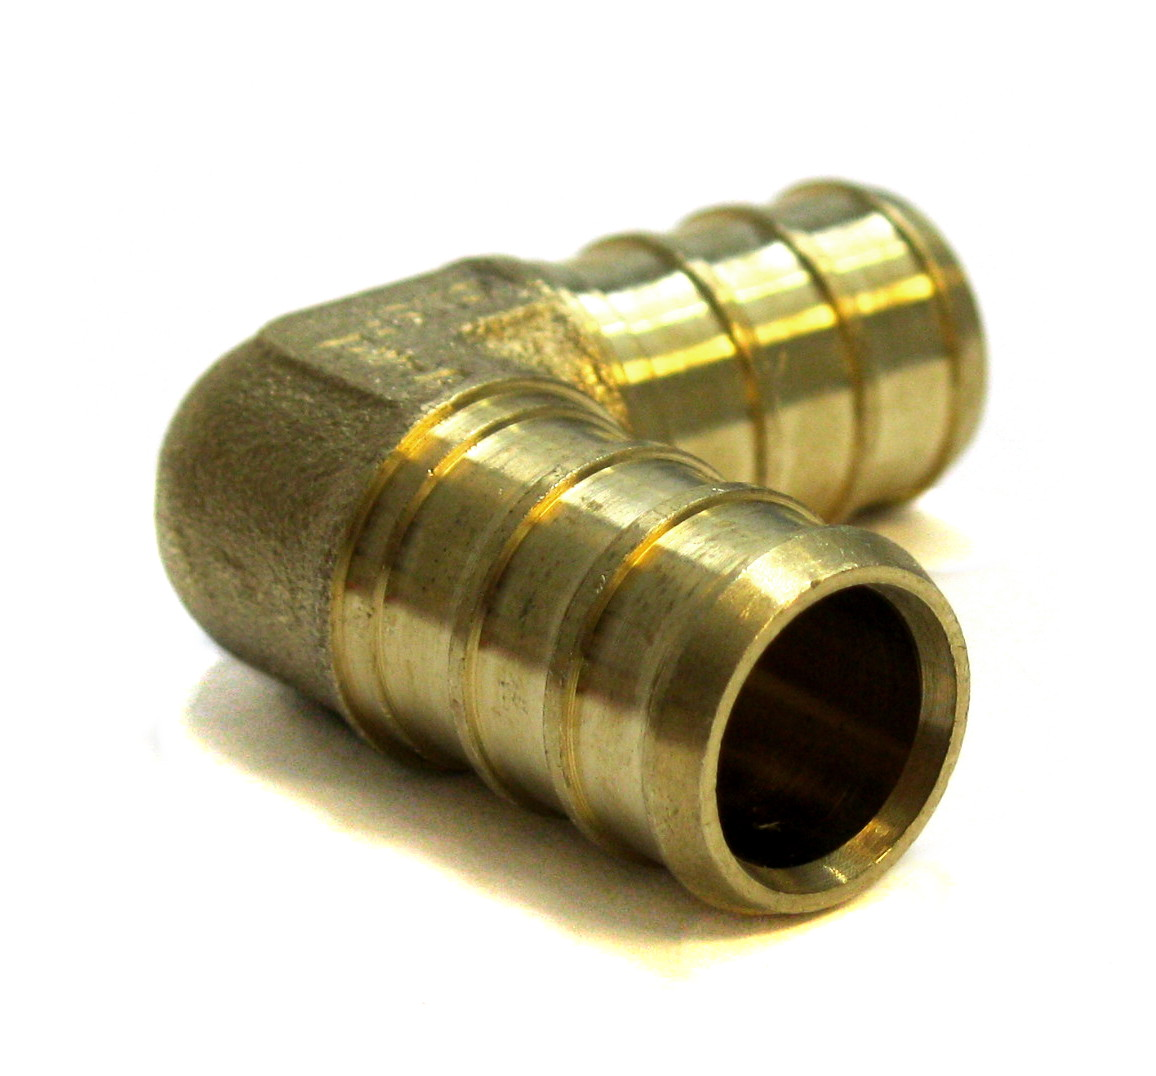 "1/2 inch Pex Elbow 1/2"" * 1/2"" (pack of 8) Brass Crimp Fitting"